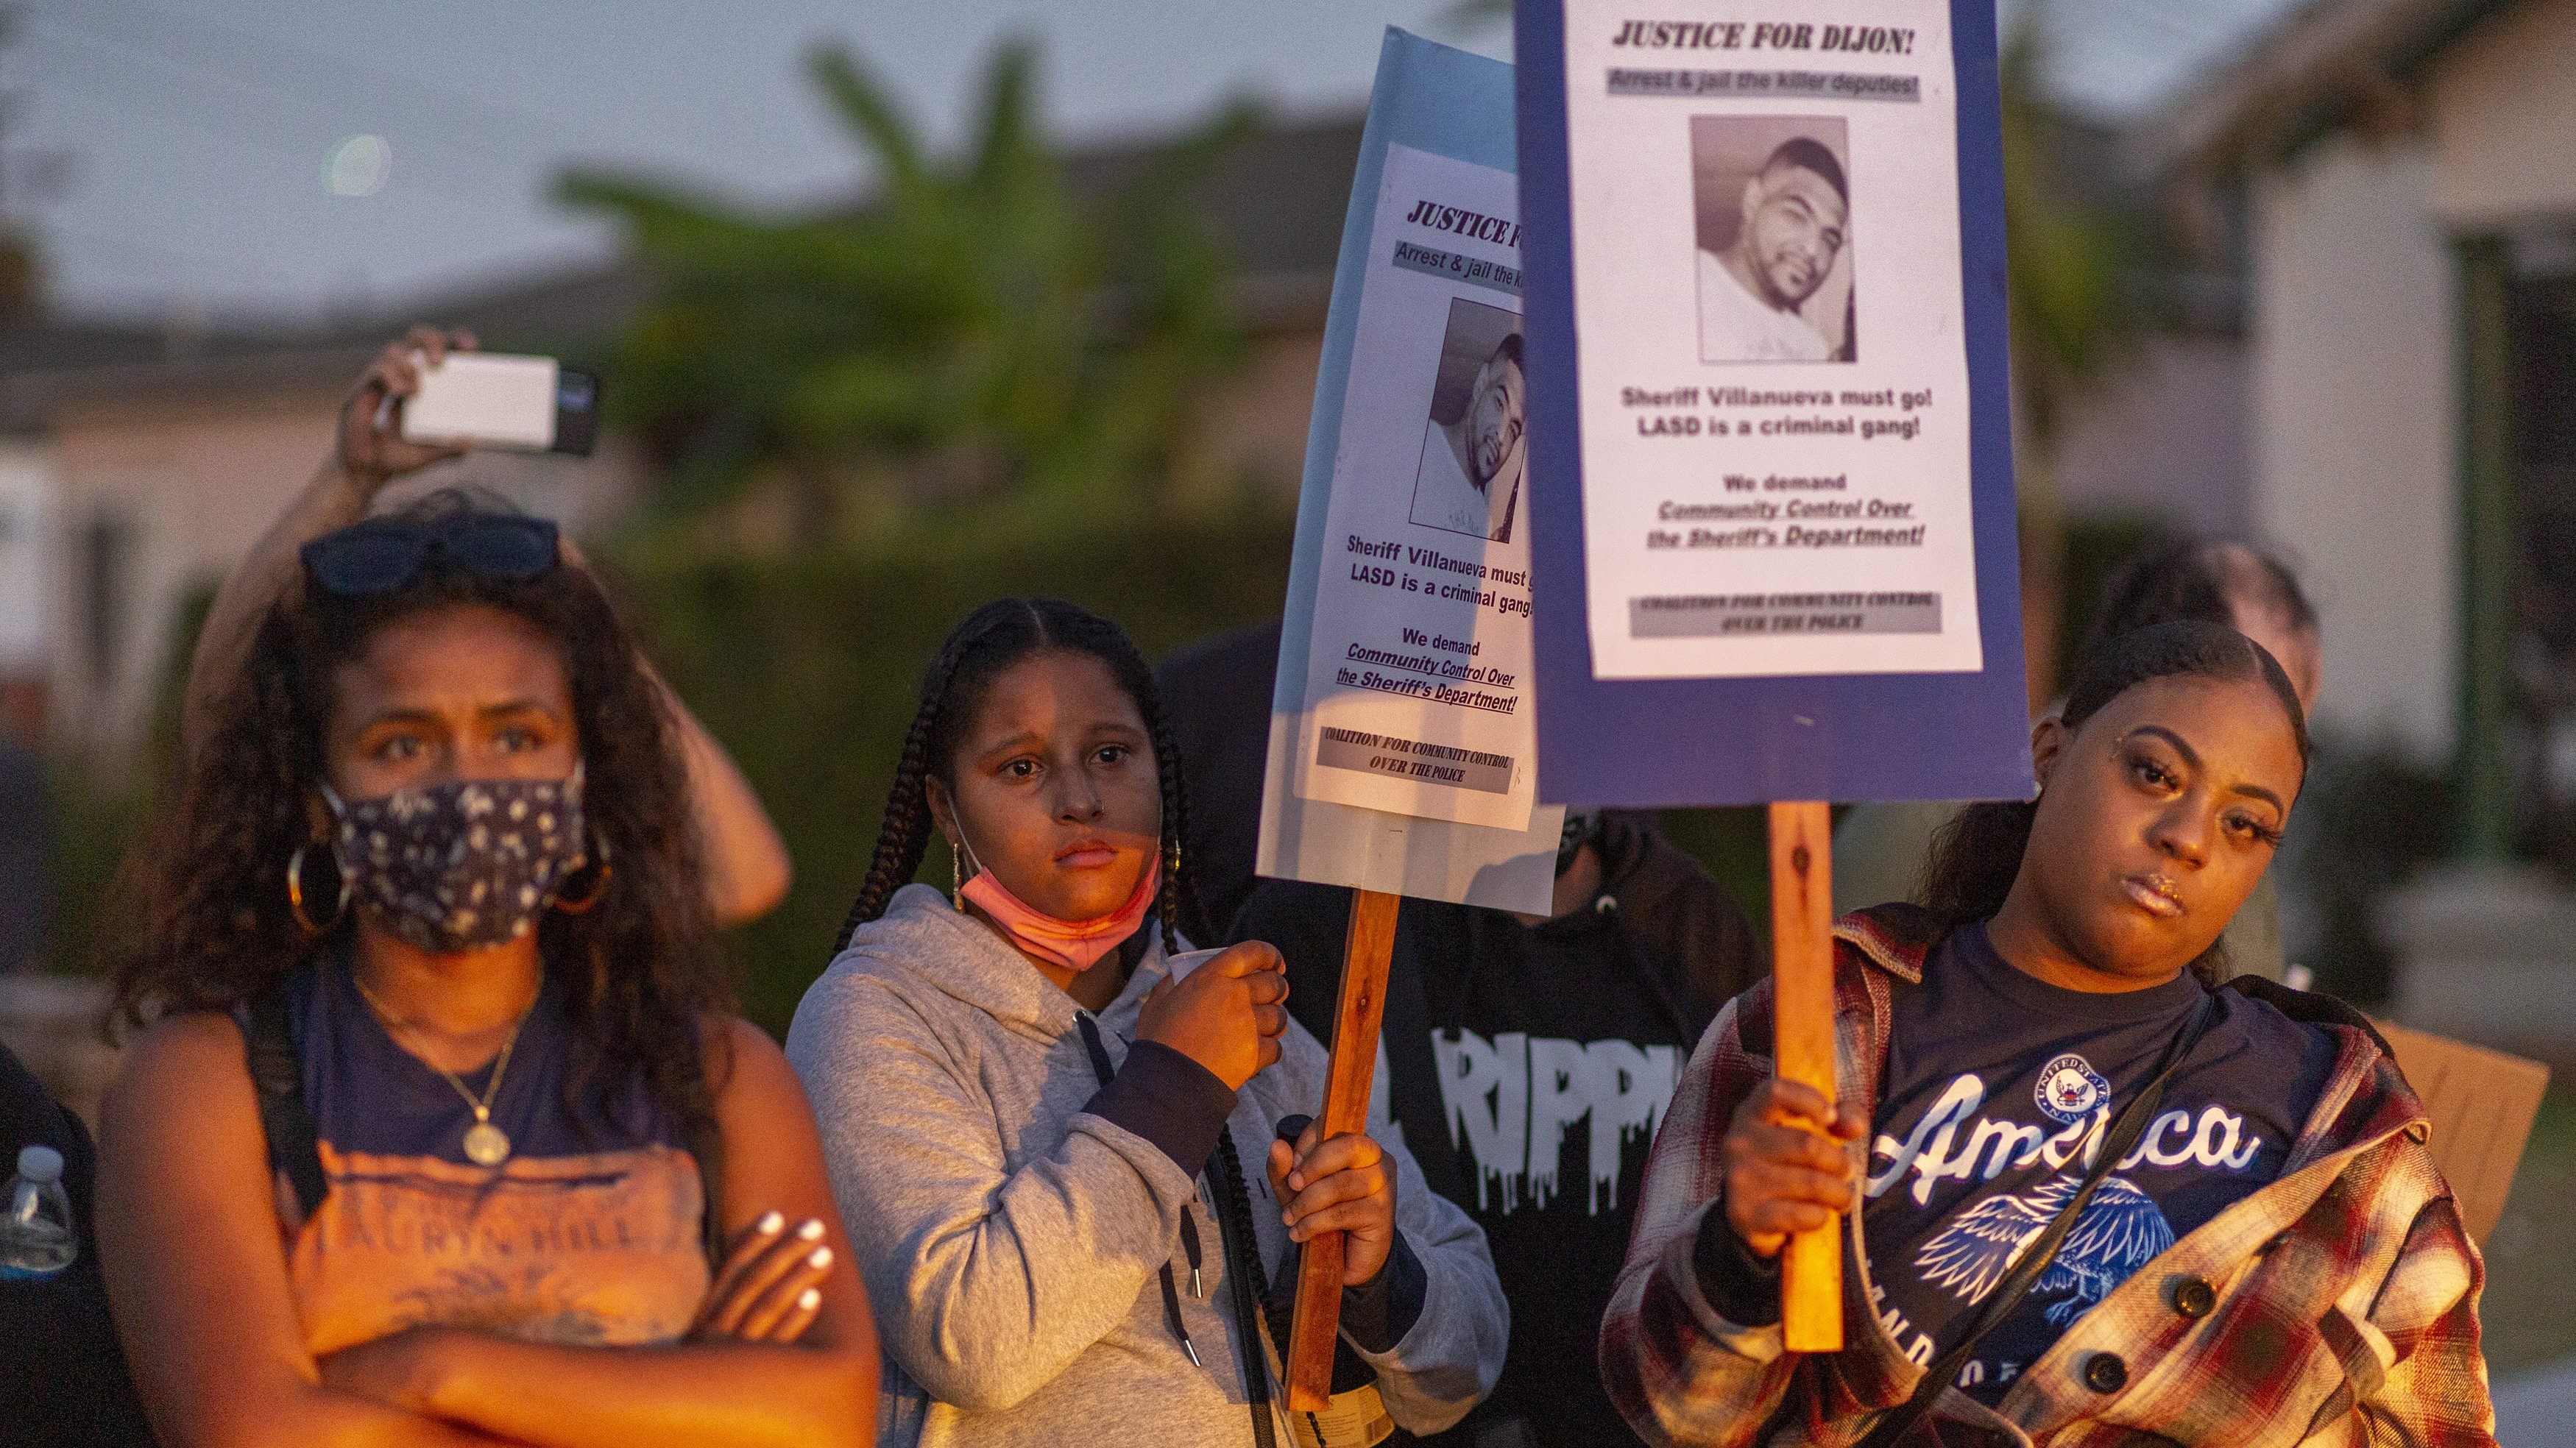 Activists March To South Los Angeles Sheriffs' Station To Protest Police Shooting Death Of Dijon Kizzee